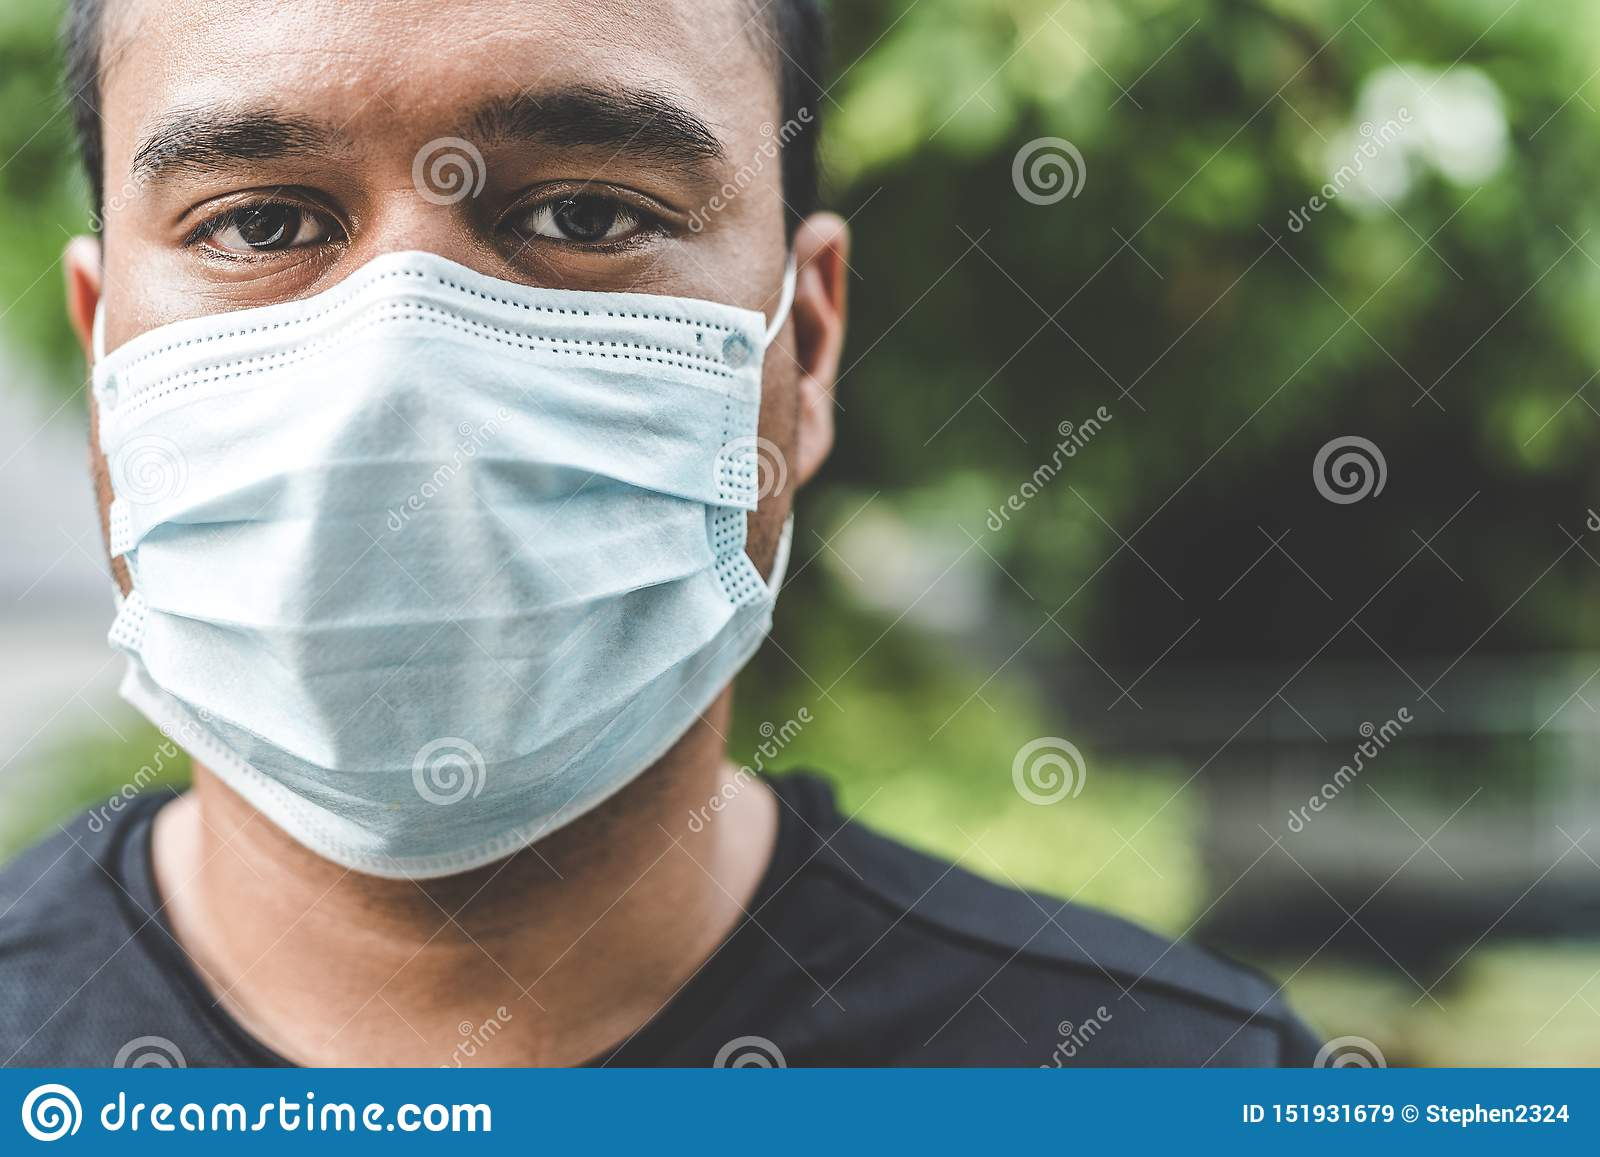 face mask for protection against virus